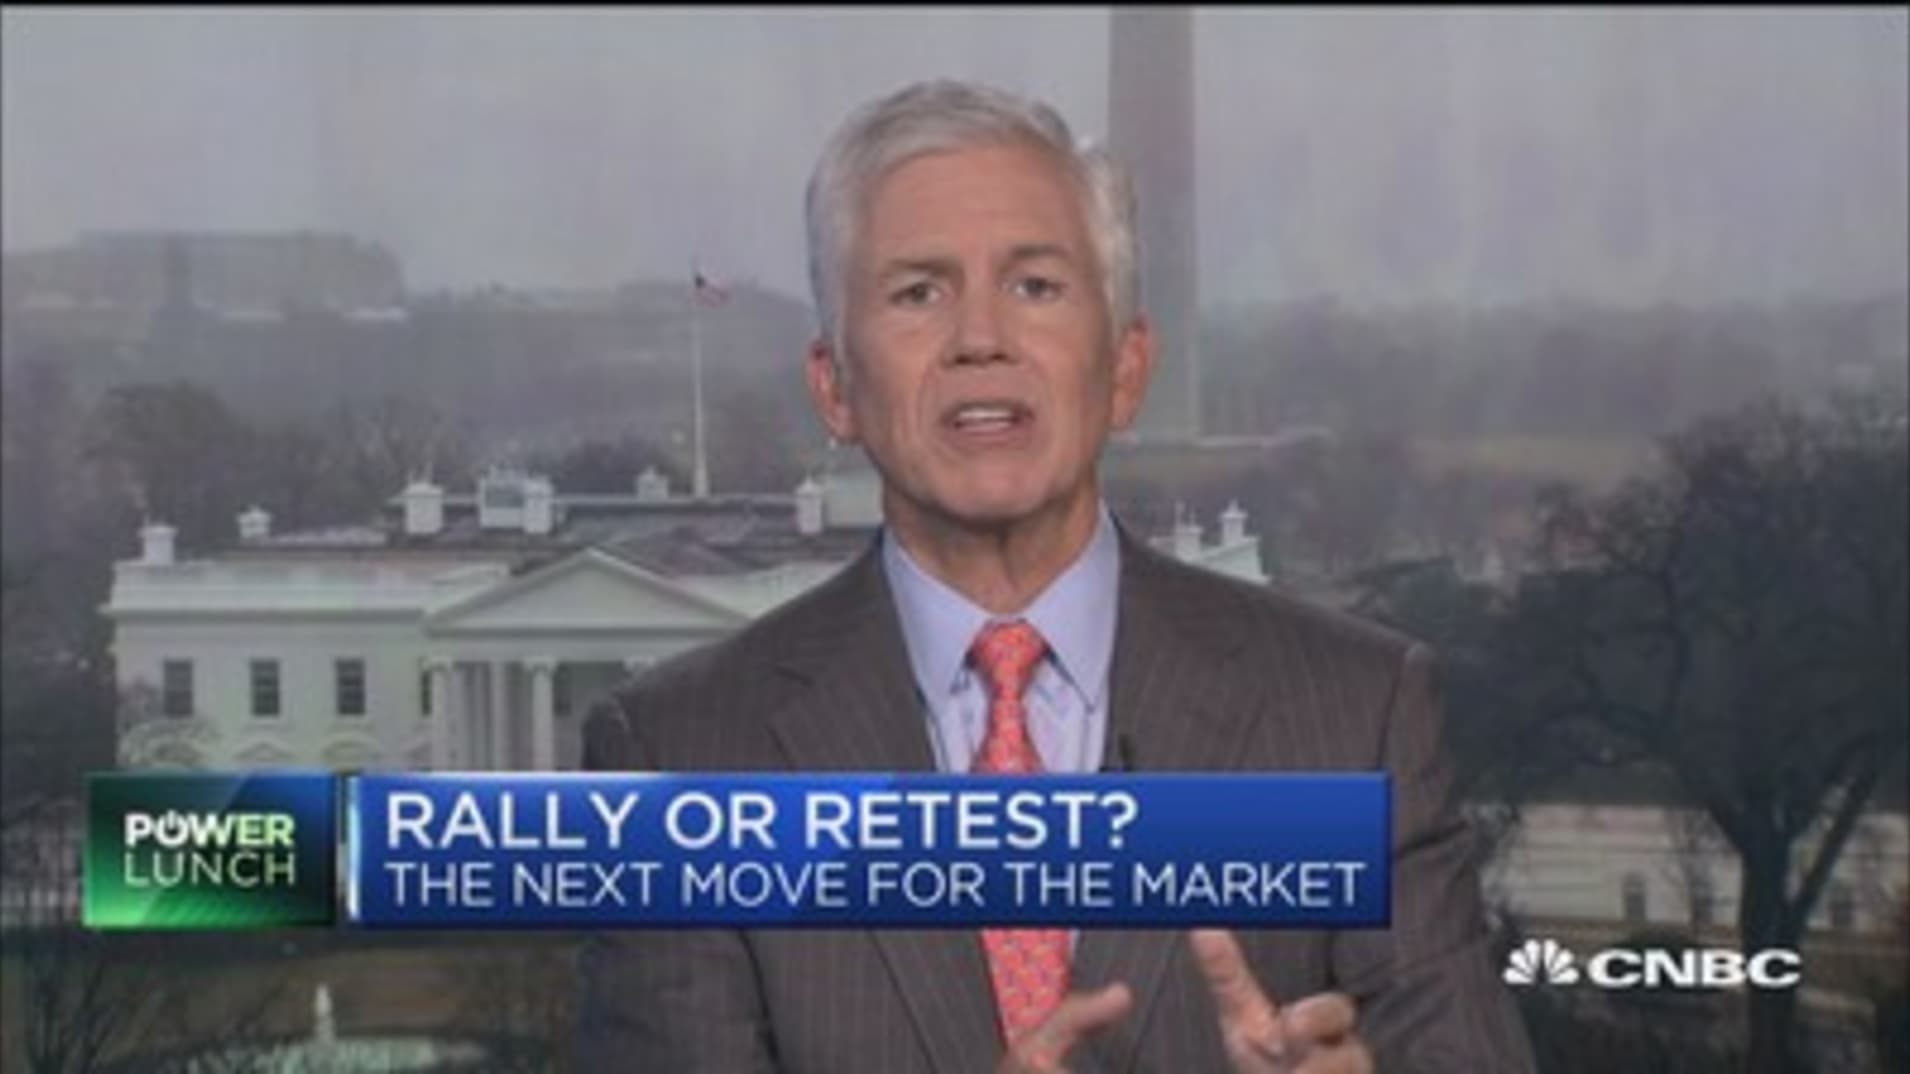 Fed has gotten it right, says expert